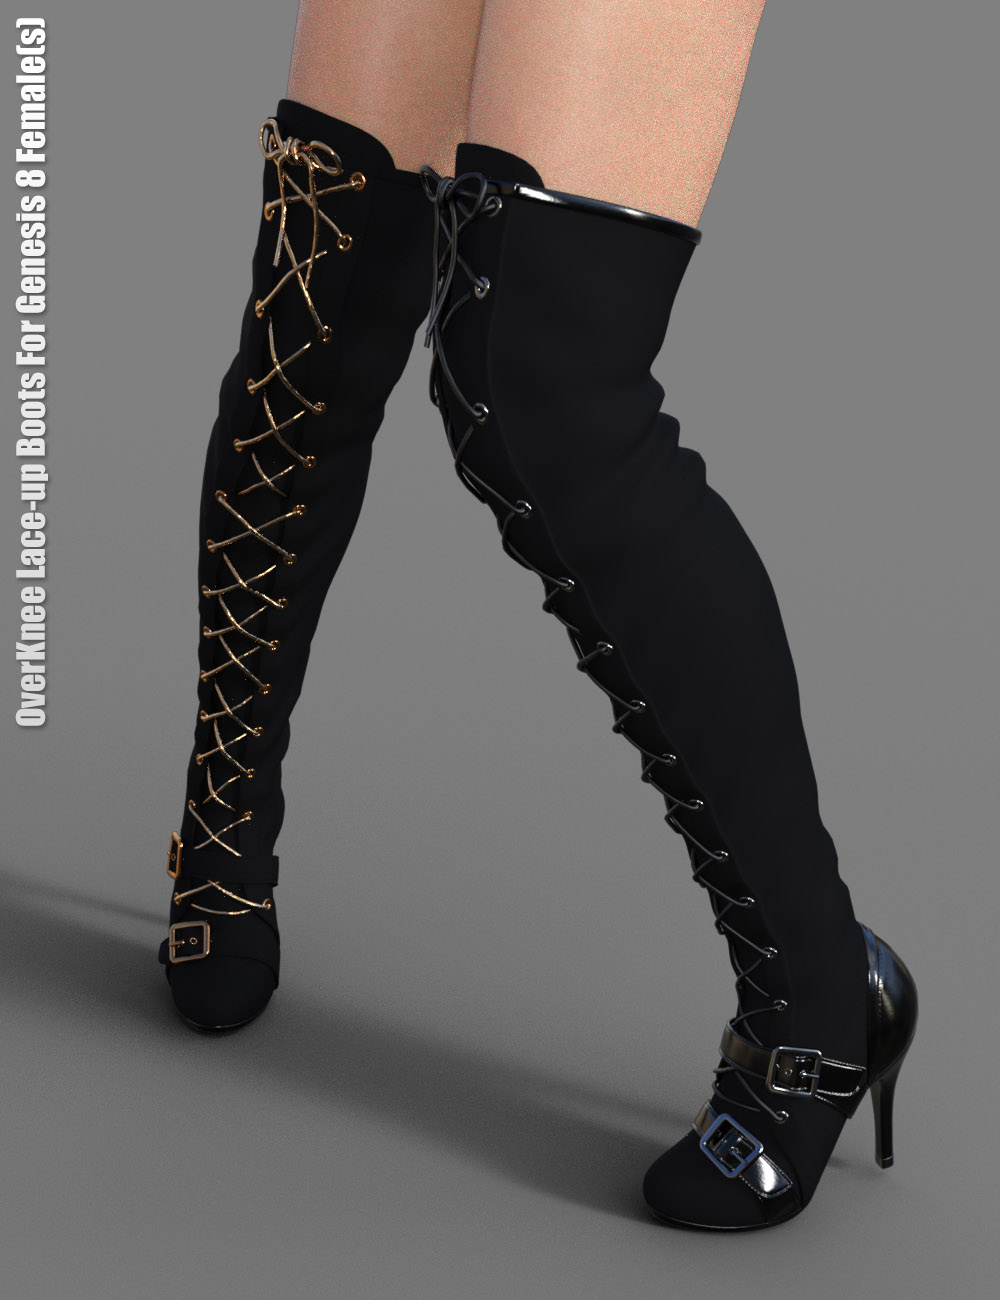 OverKnee Lace-Up Boots for Genesis 8 Female(s) by: dx30, 3D Models by Daz 3D